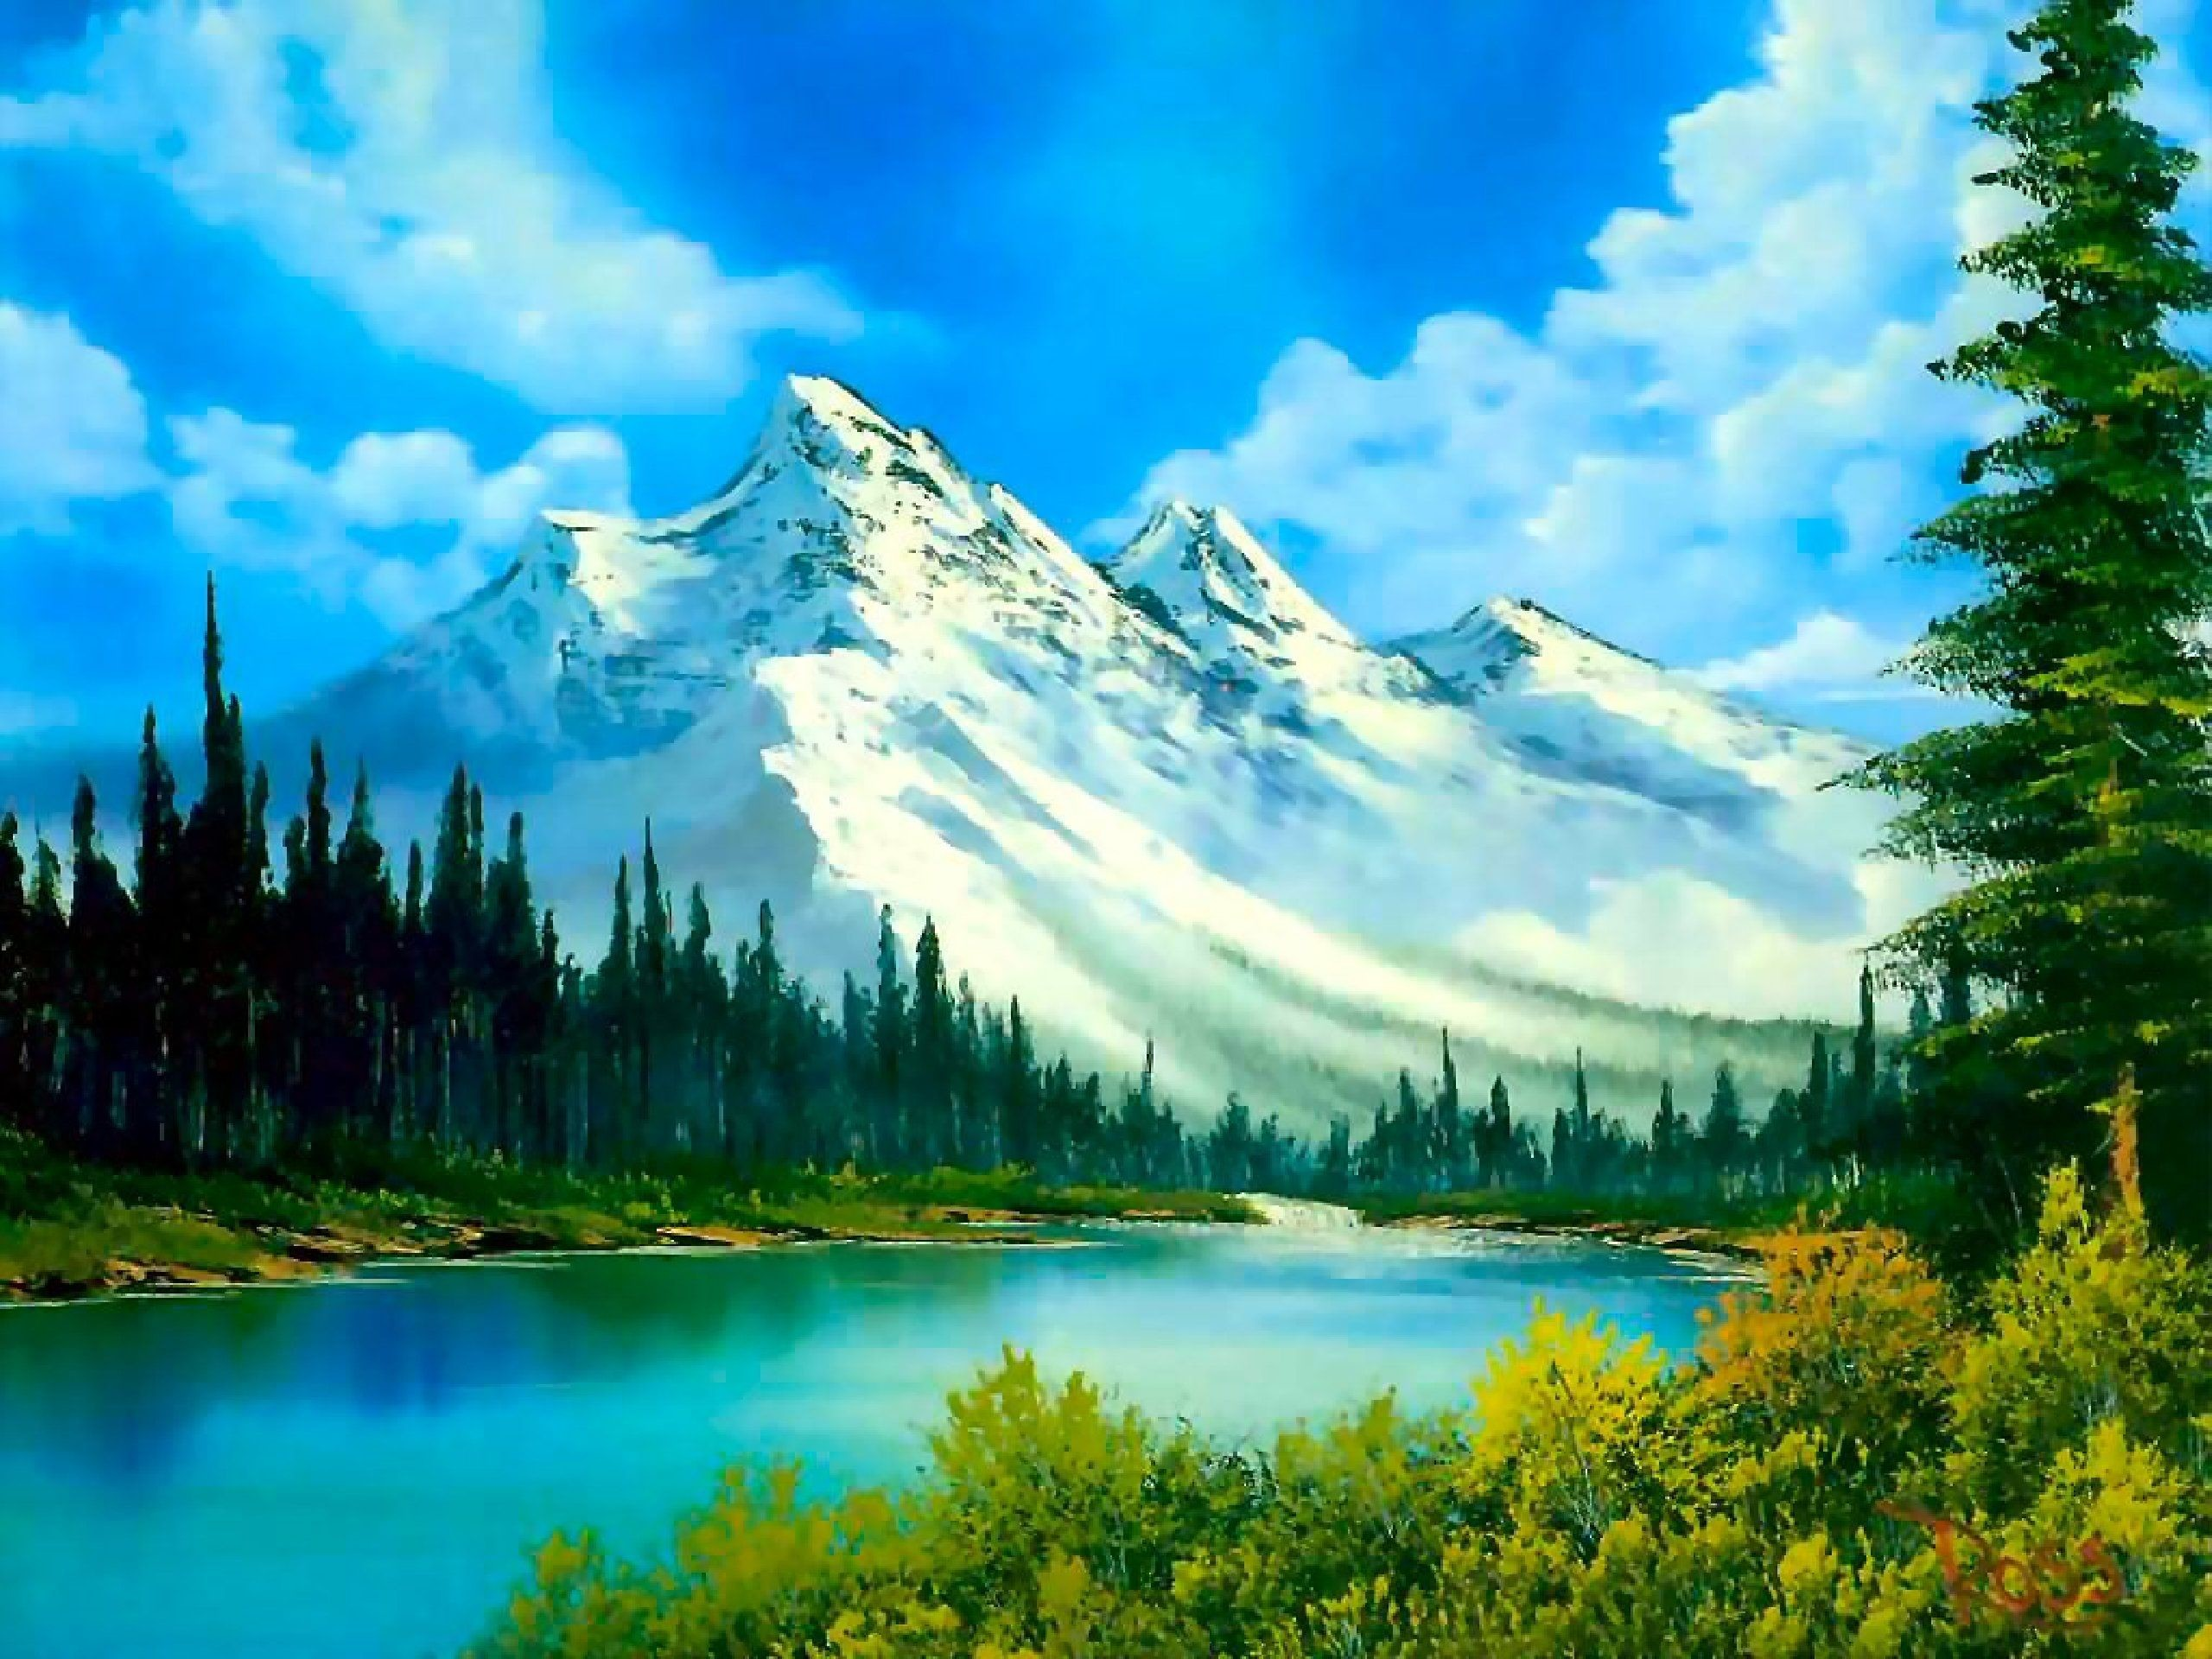 Res: 2560x1920, Peaceful Landscape Paintings by Bob Ross - Bob Ross Paintings : Mountain  Waterfall 22